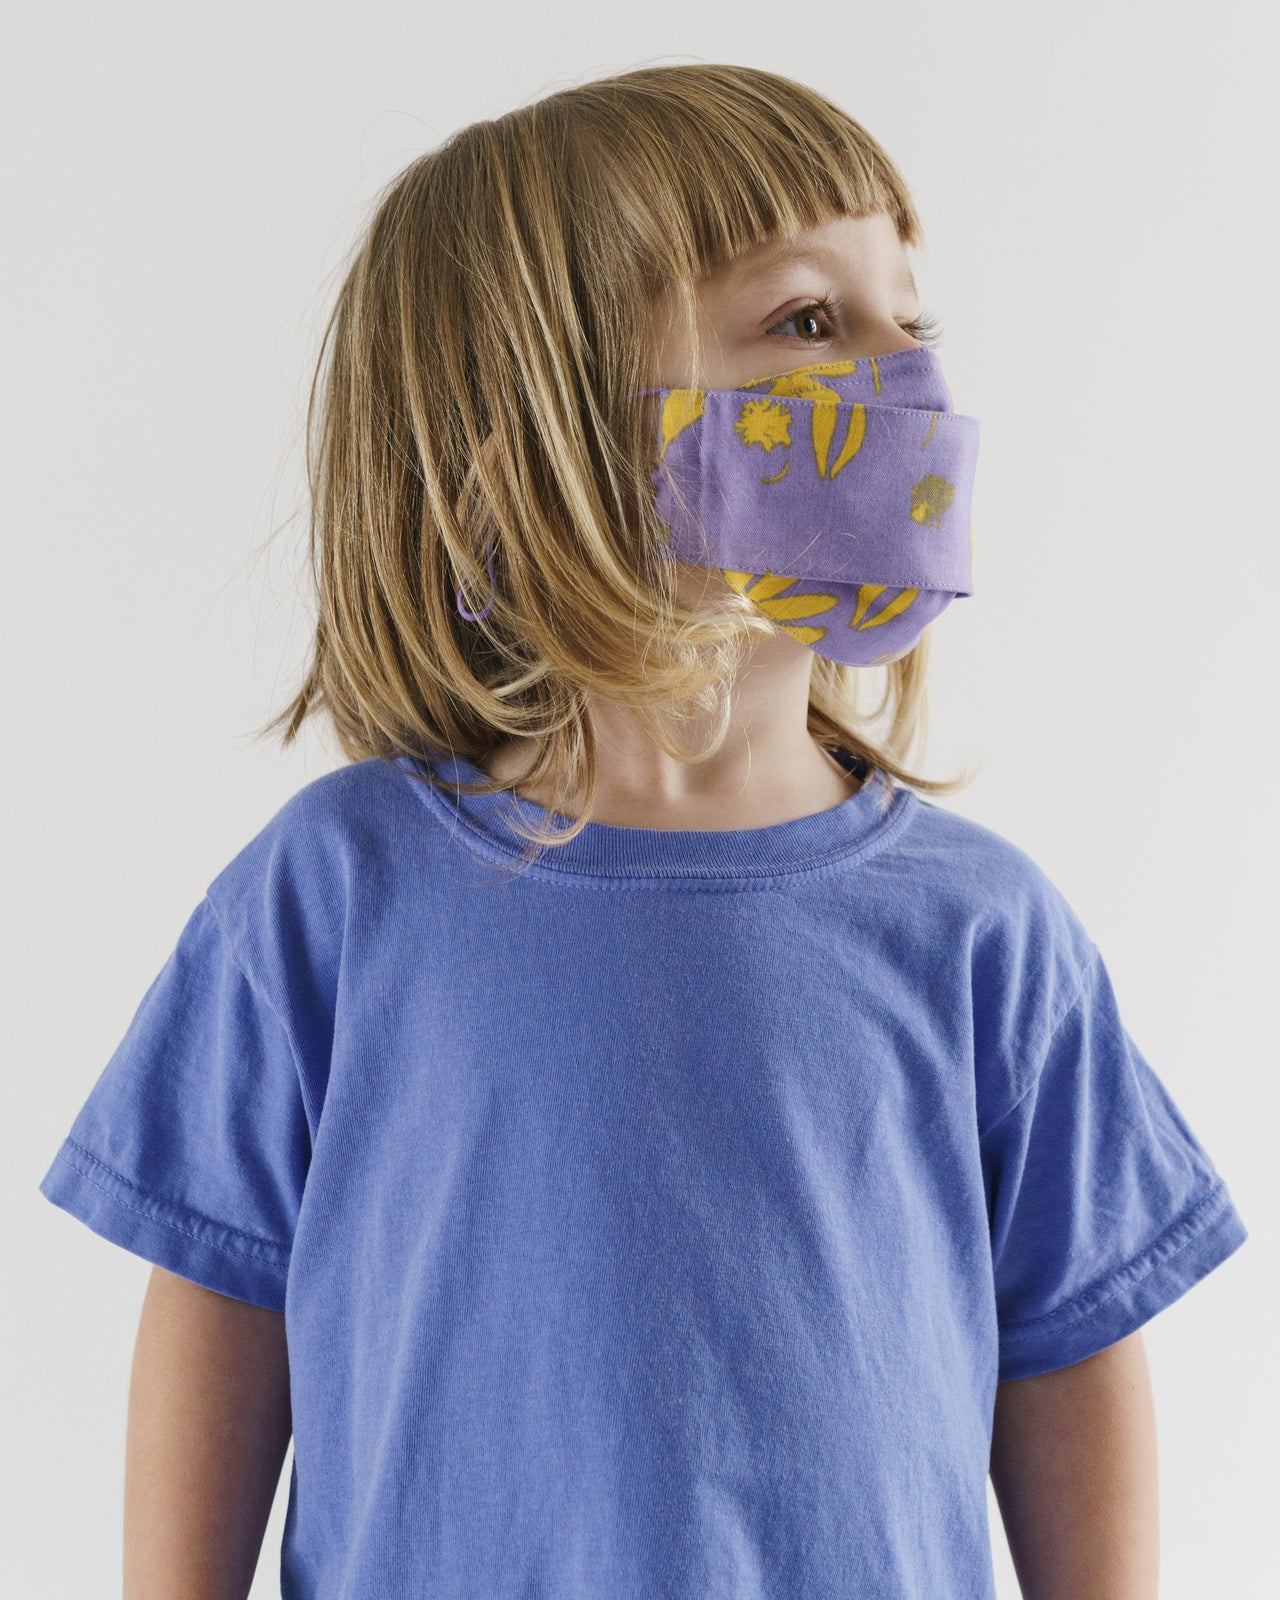 Kids' Fabric Mask Set - Floral Sun Prints